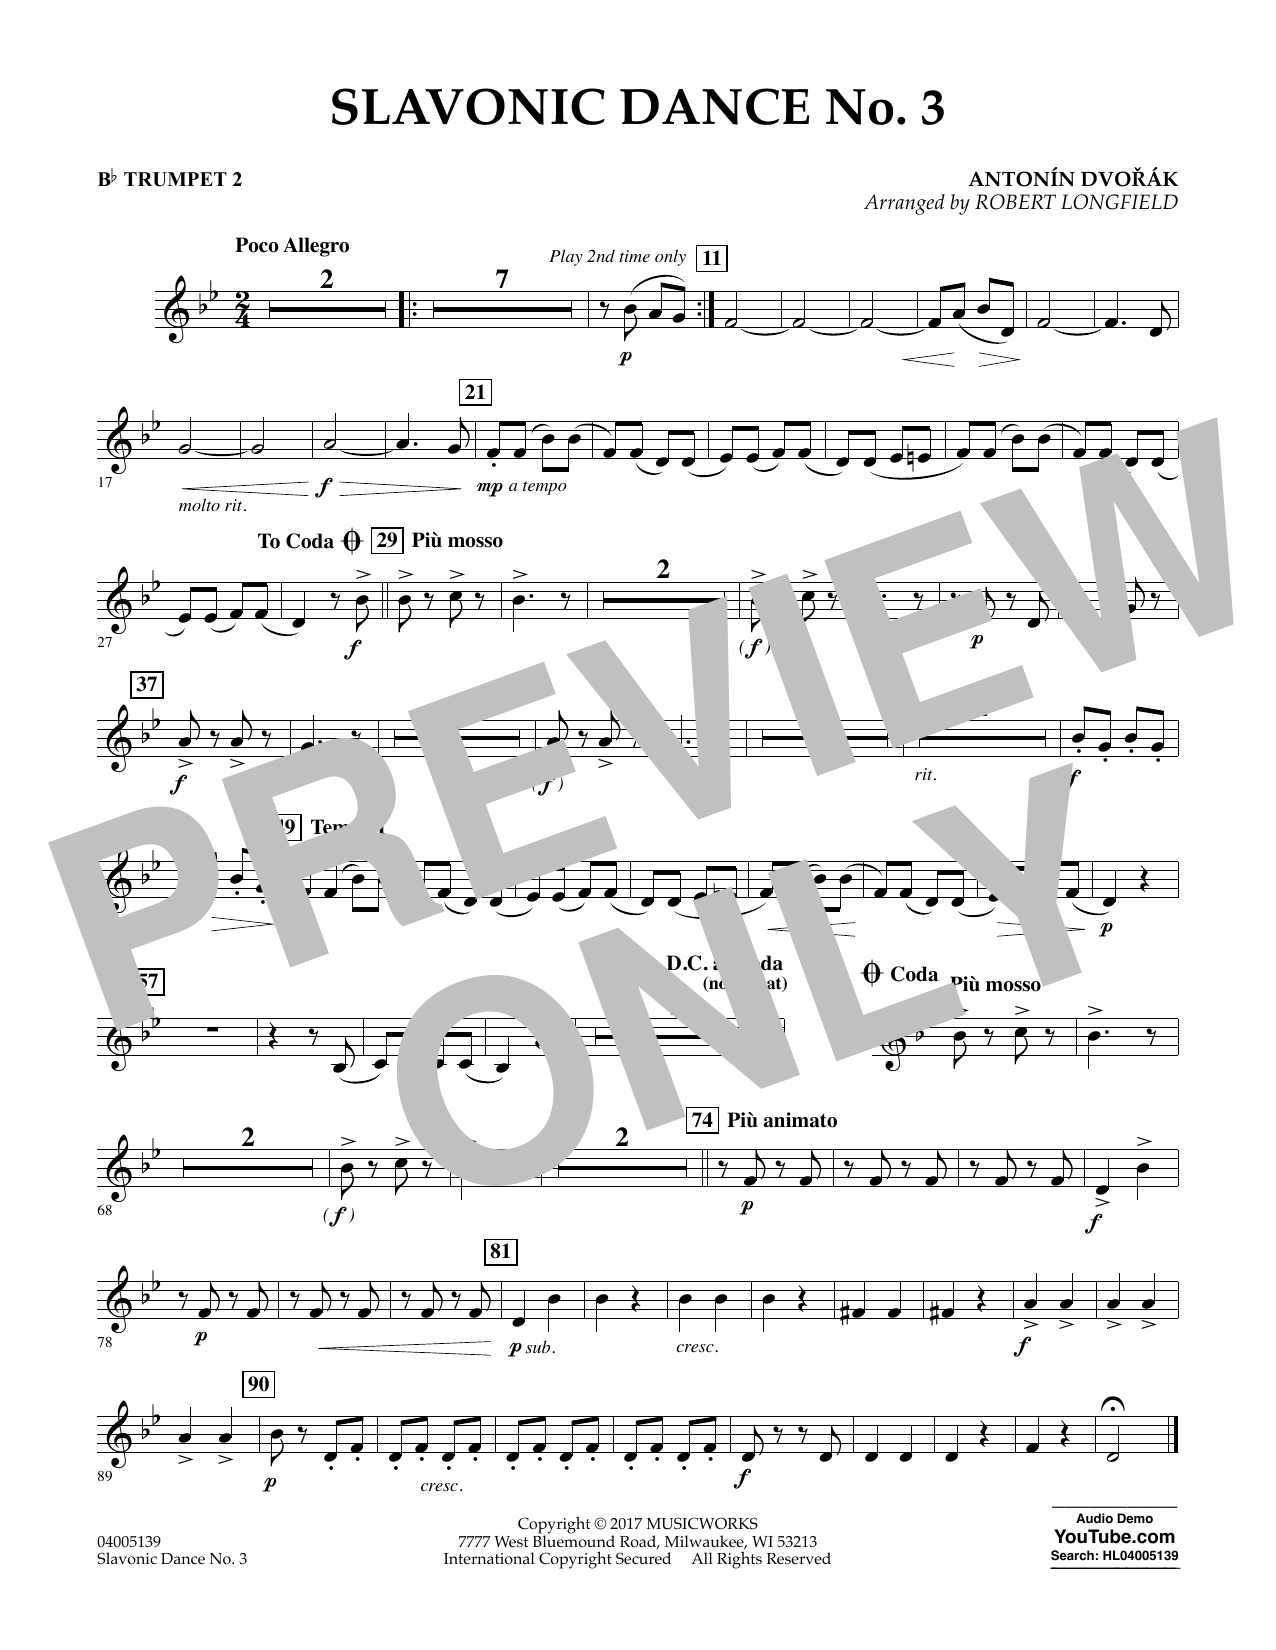 Robert Longfield Slavonic Dance No. 3 - Bb Trumpet 2 sheet music notes and chords. Download Printable PDF.